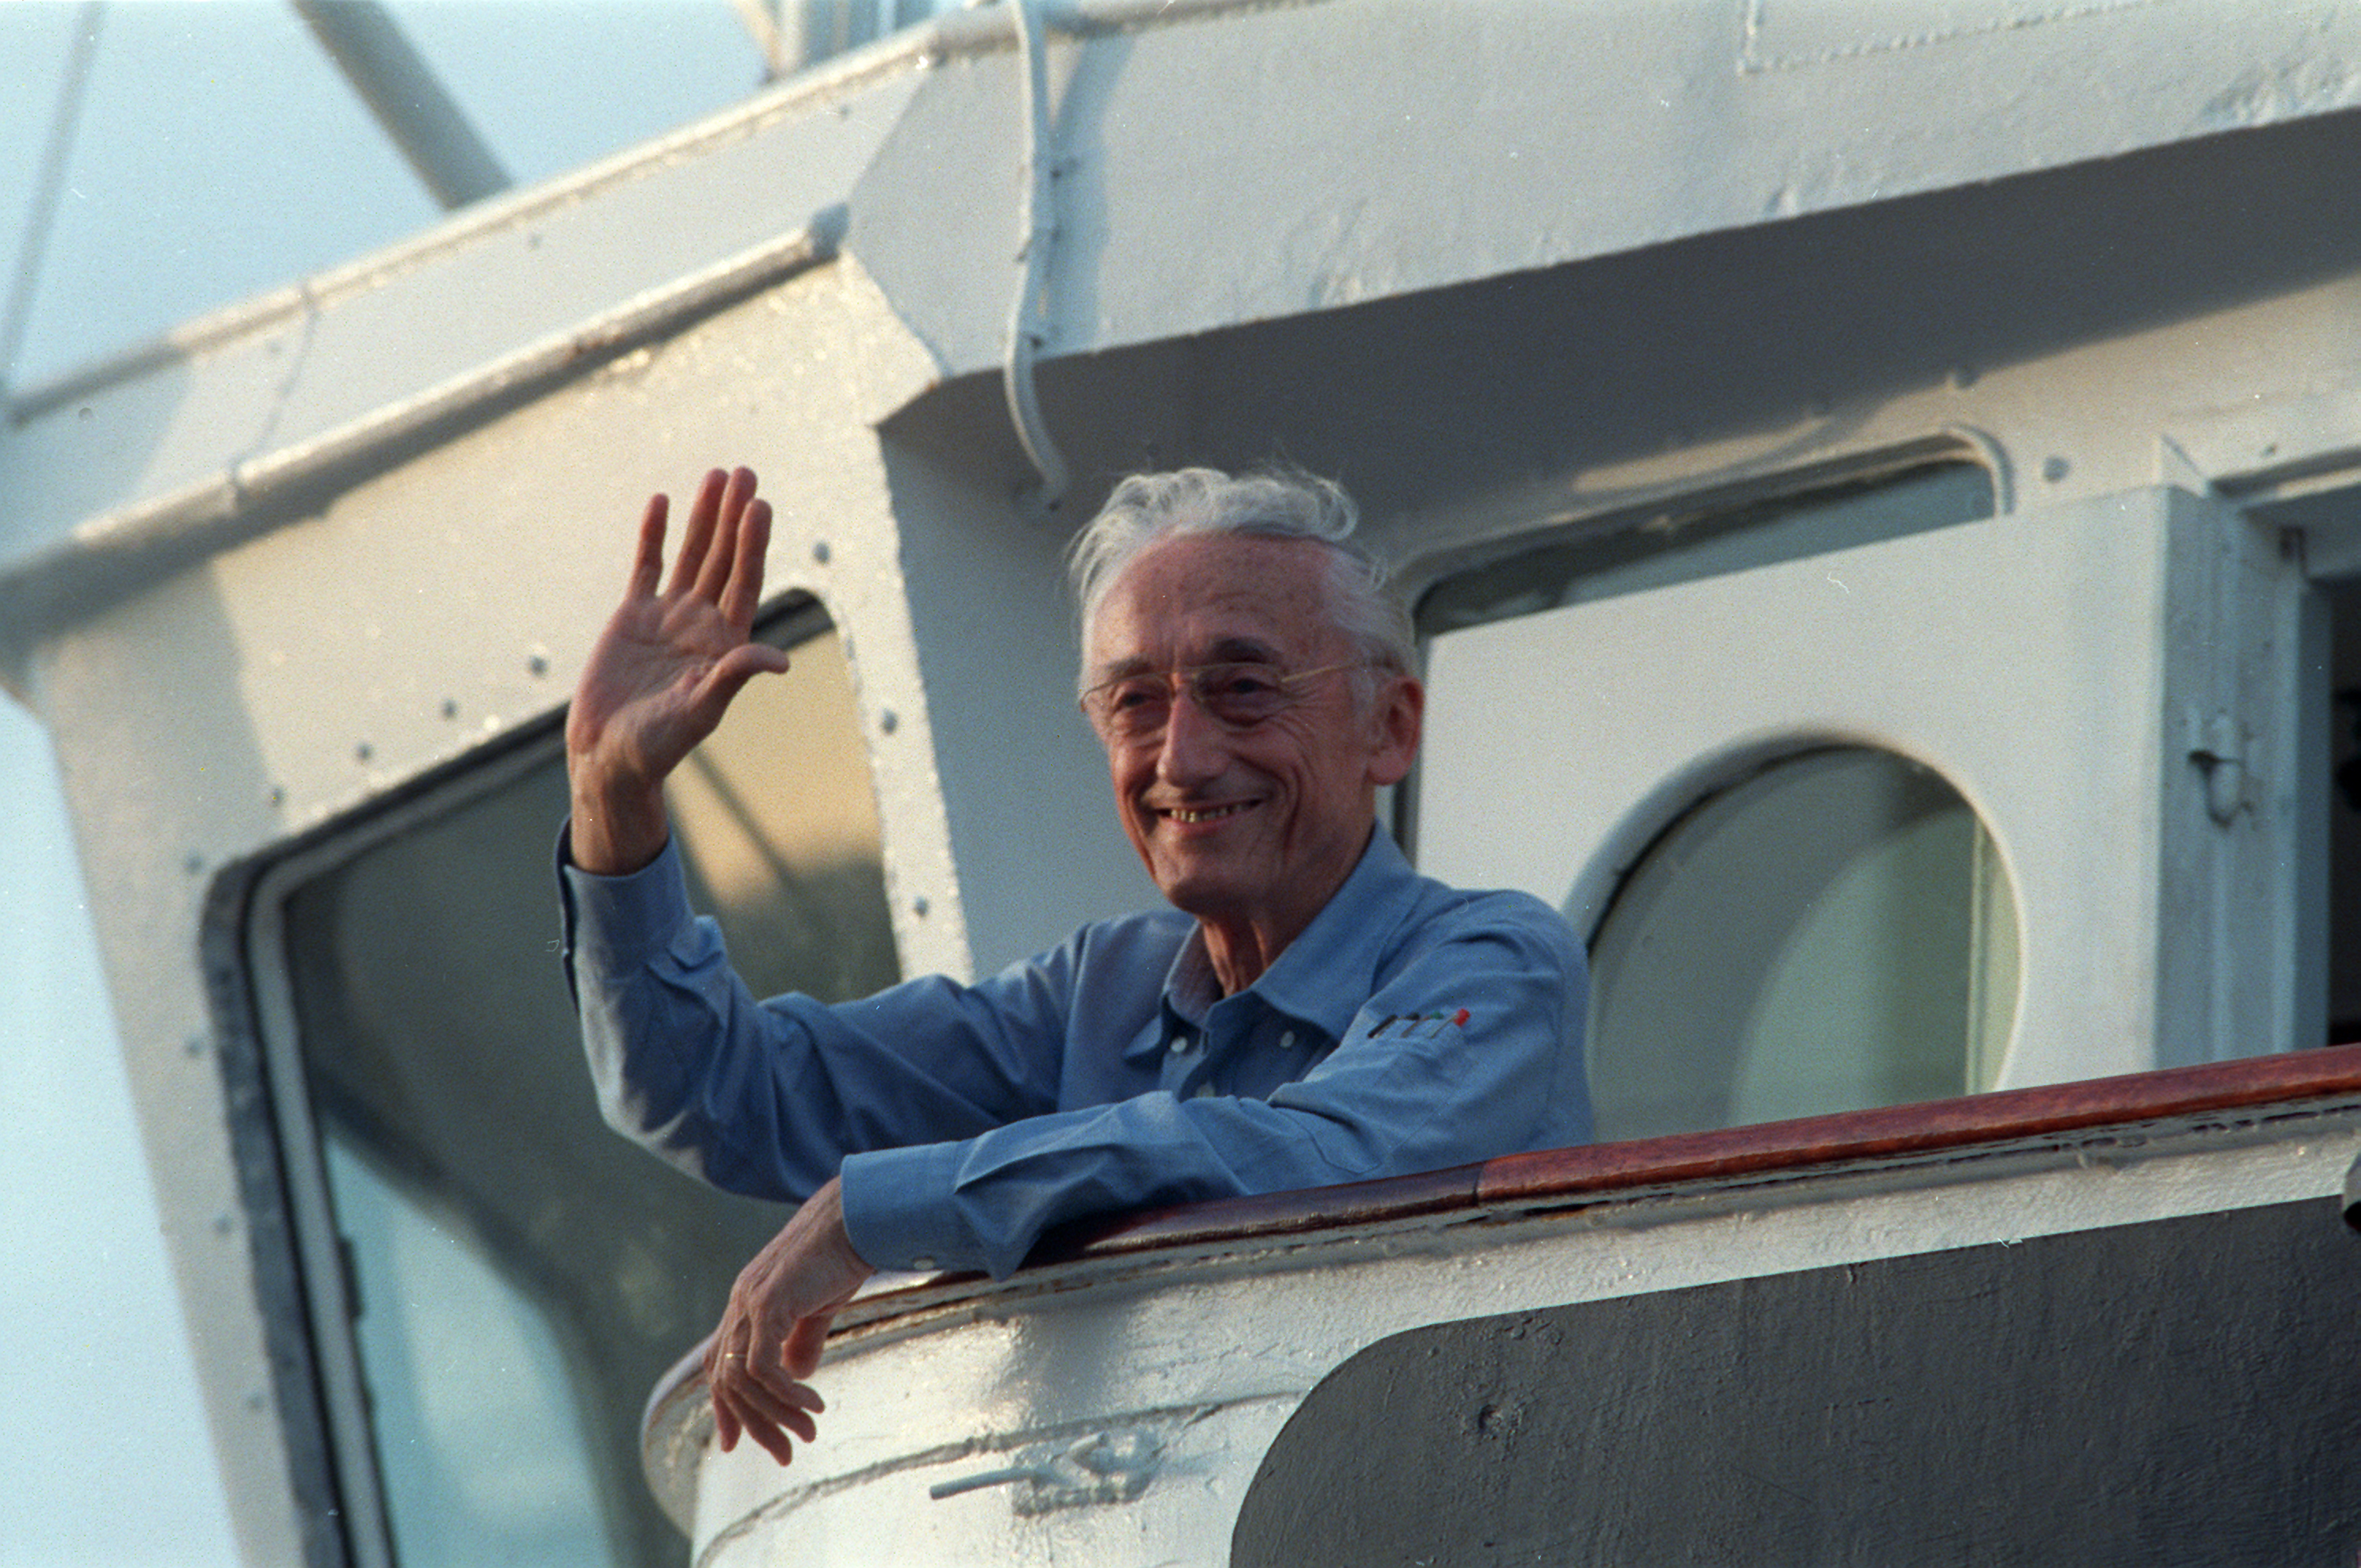 """Jacques-Yves Cousteau waves to onlookers aboard his ship Calypso as it pulls away from the dock to begin the second half of its """"Rediscover the World"""" trip in Miami, Fla., Wednesday, Aug. 27, 1986. Cousteau rode the ship just outside Government Cut in Miami before returning to shore. He plans to rejoin the vessel in 17 days in the South Pacific to study the damage done to the world's seas. (AP Photo/Doug Jennings)"""